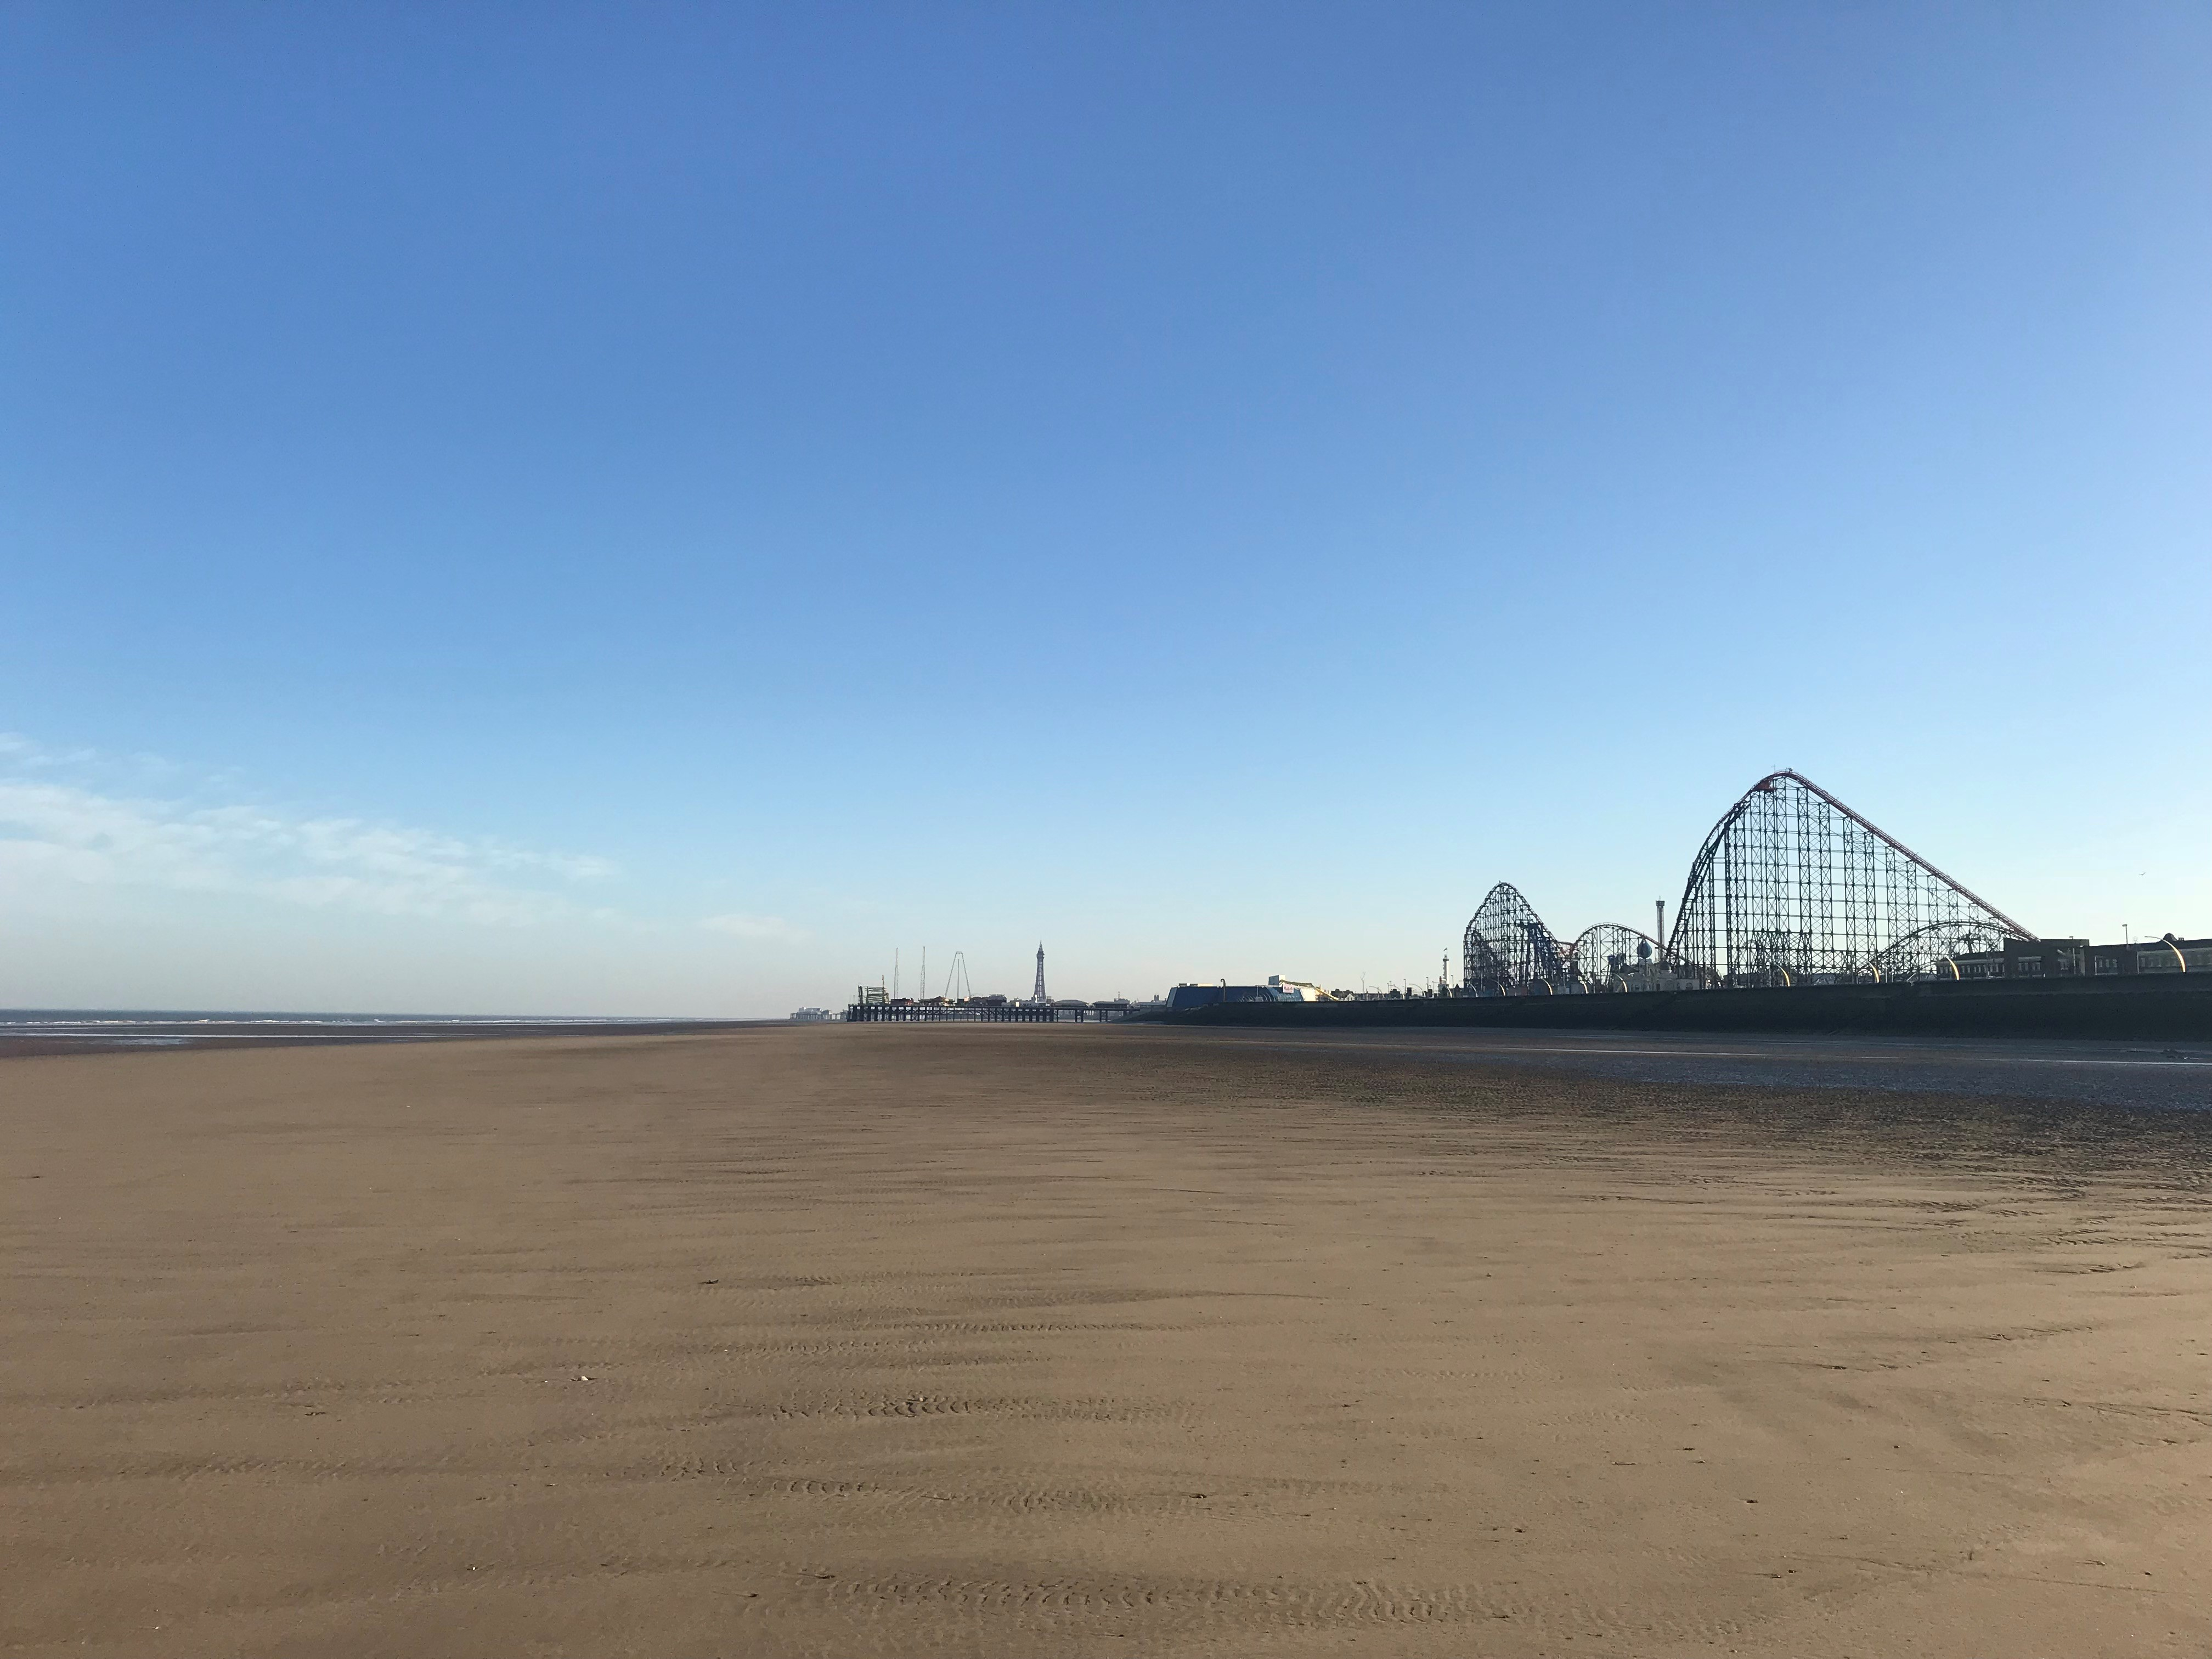 Blackpool South named as the only Blue Flag beach in the North West